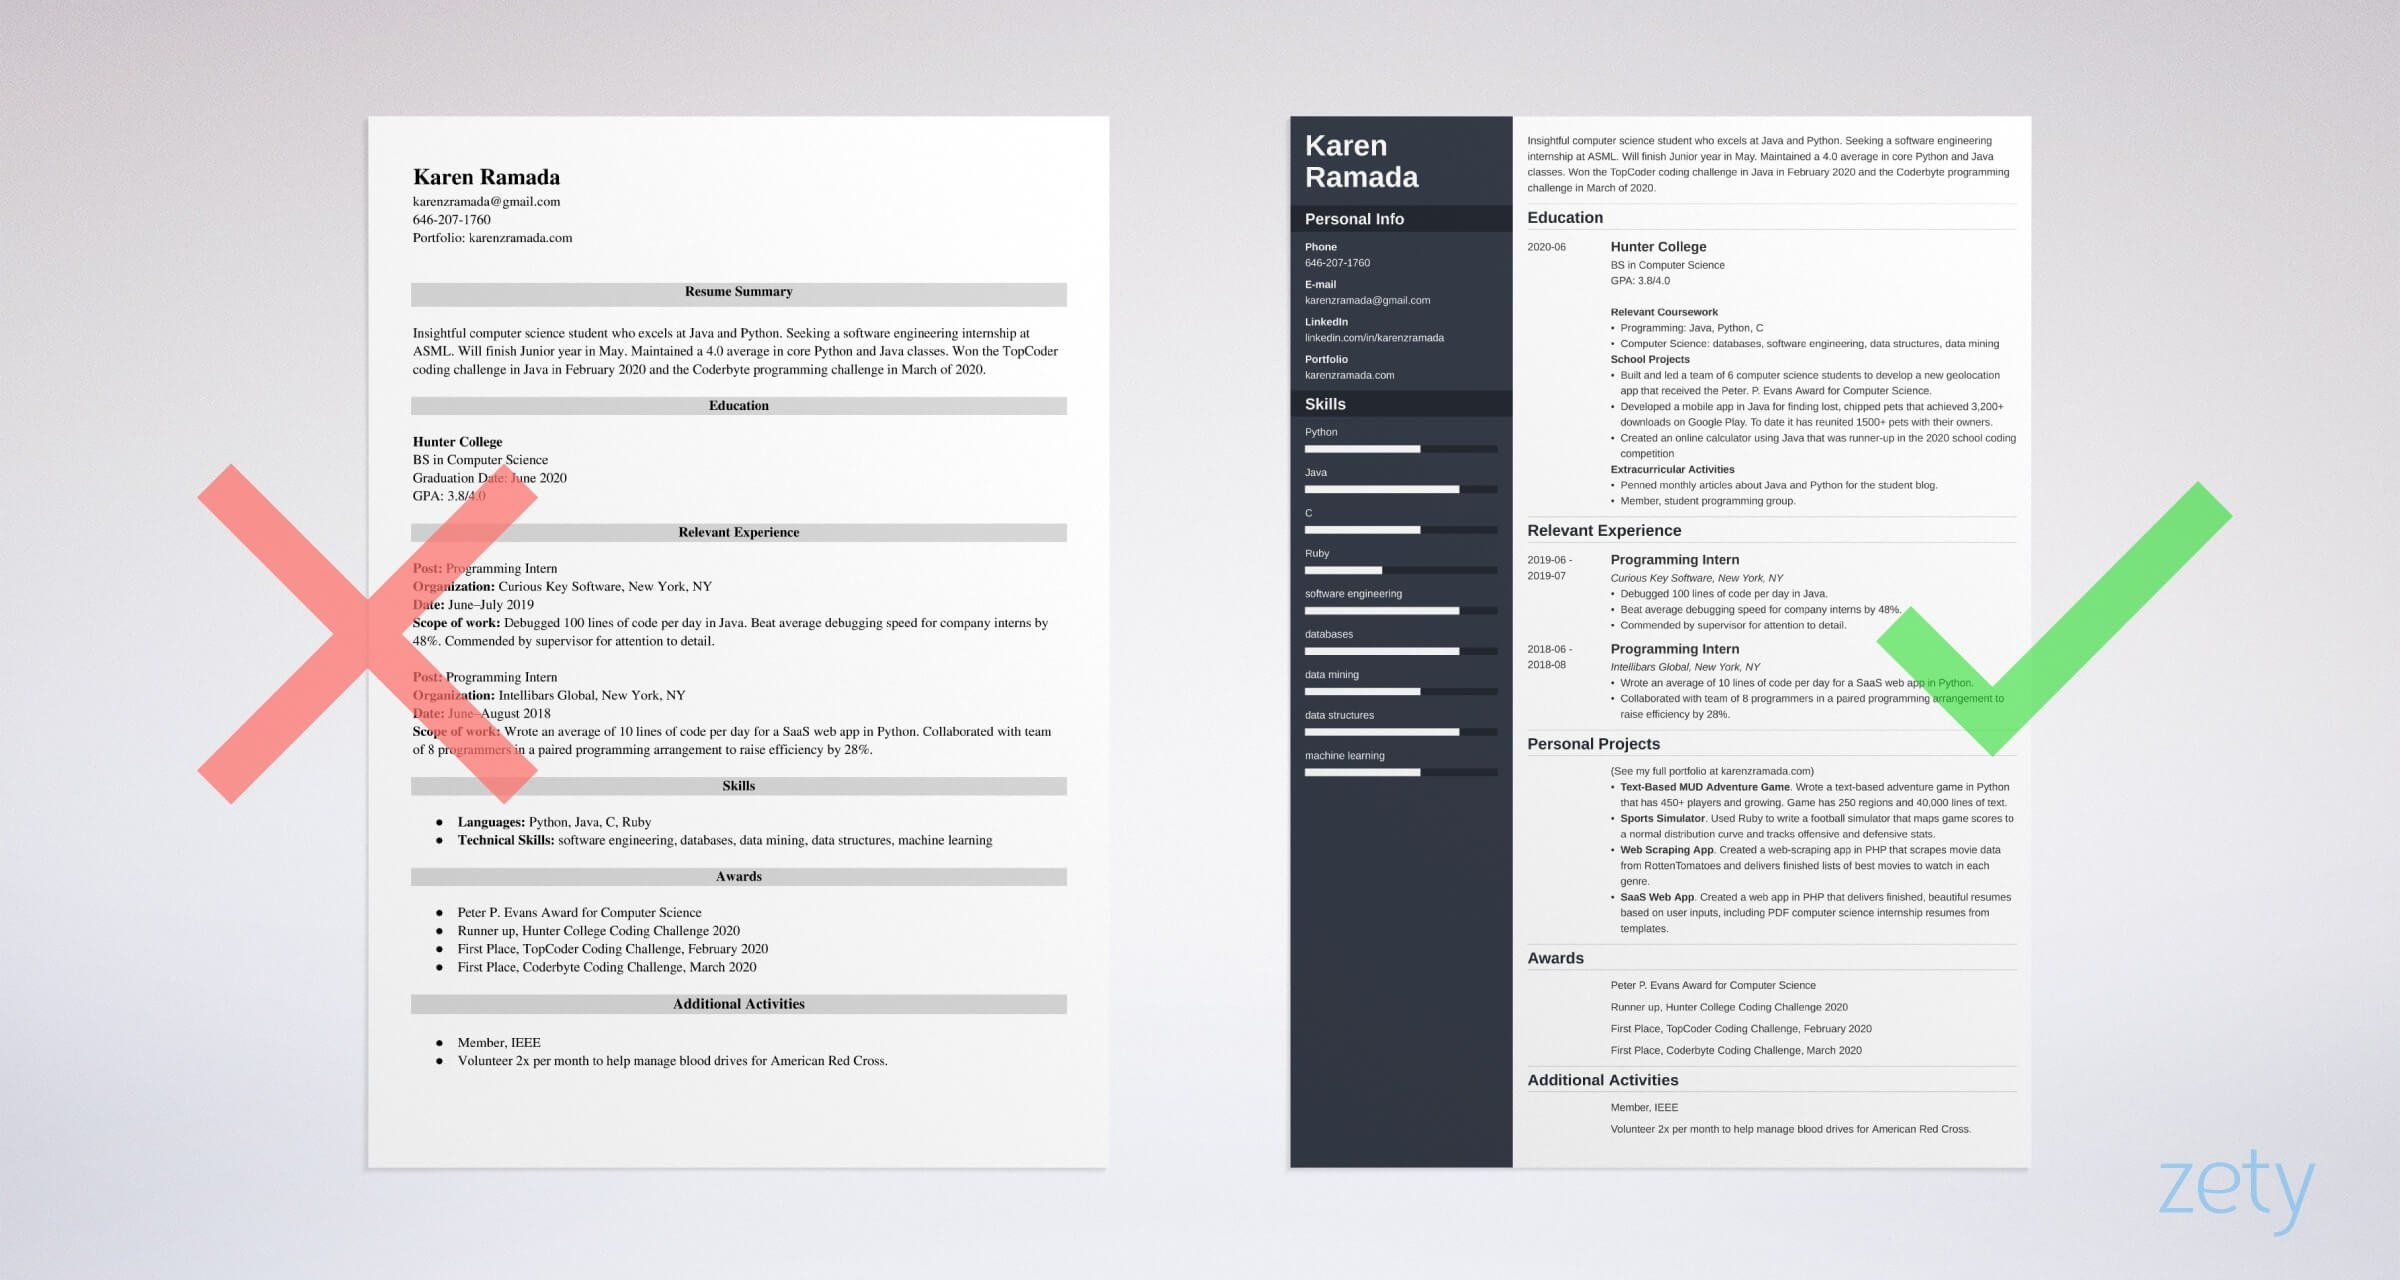 computer science internship resume template guide sample for fresh graduate example zety Resume Sample Resume For Computer Science Fresh Graduate